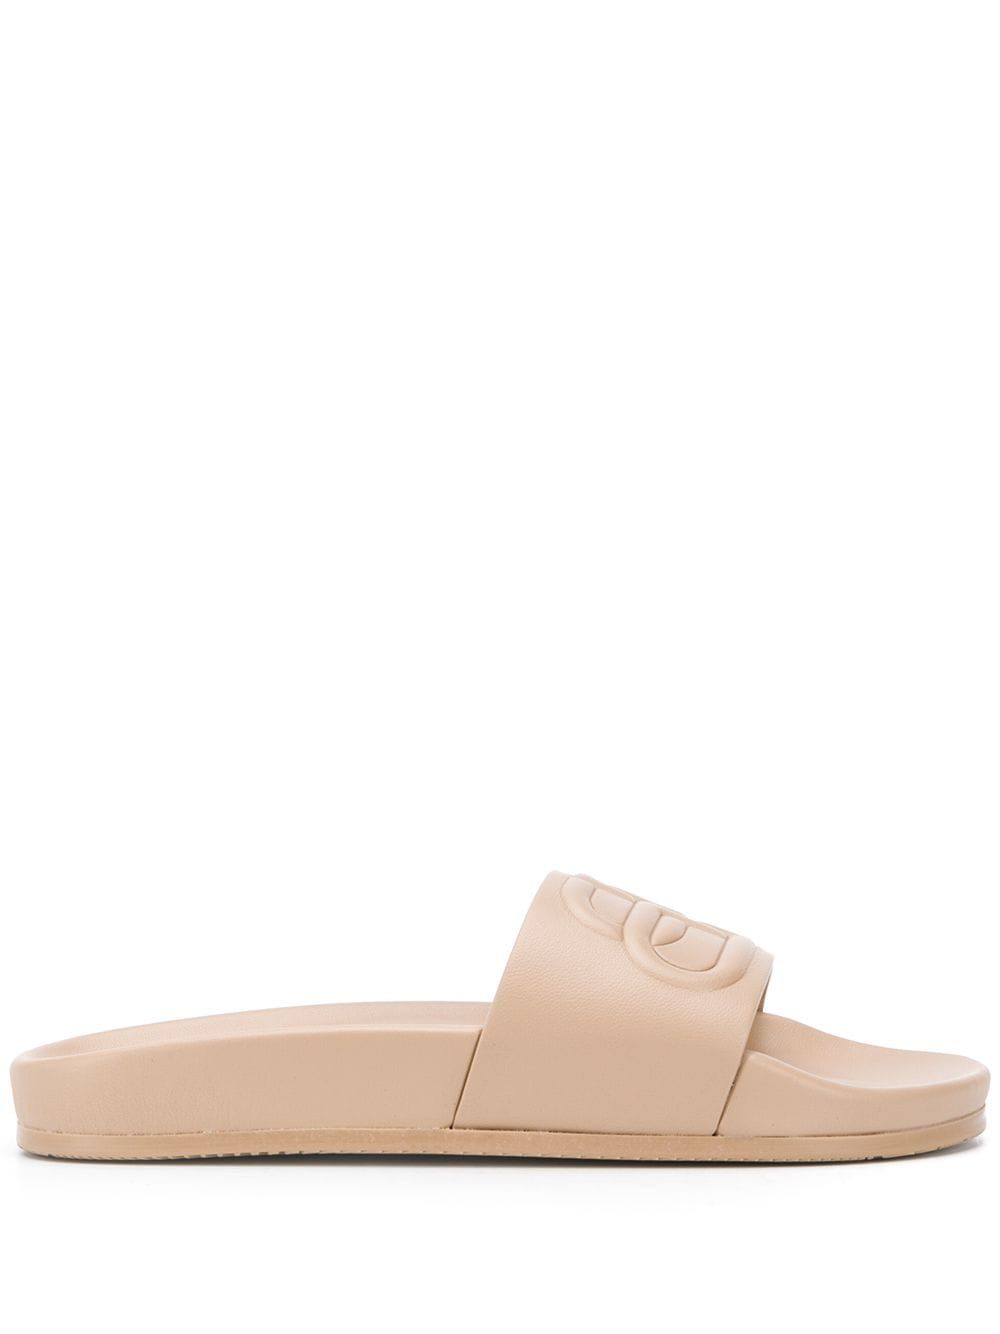 BALENCIAGA Leathers BALENCIAGA WOMEN'S BEIGE LEATHER SANDALS